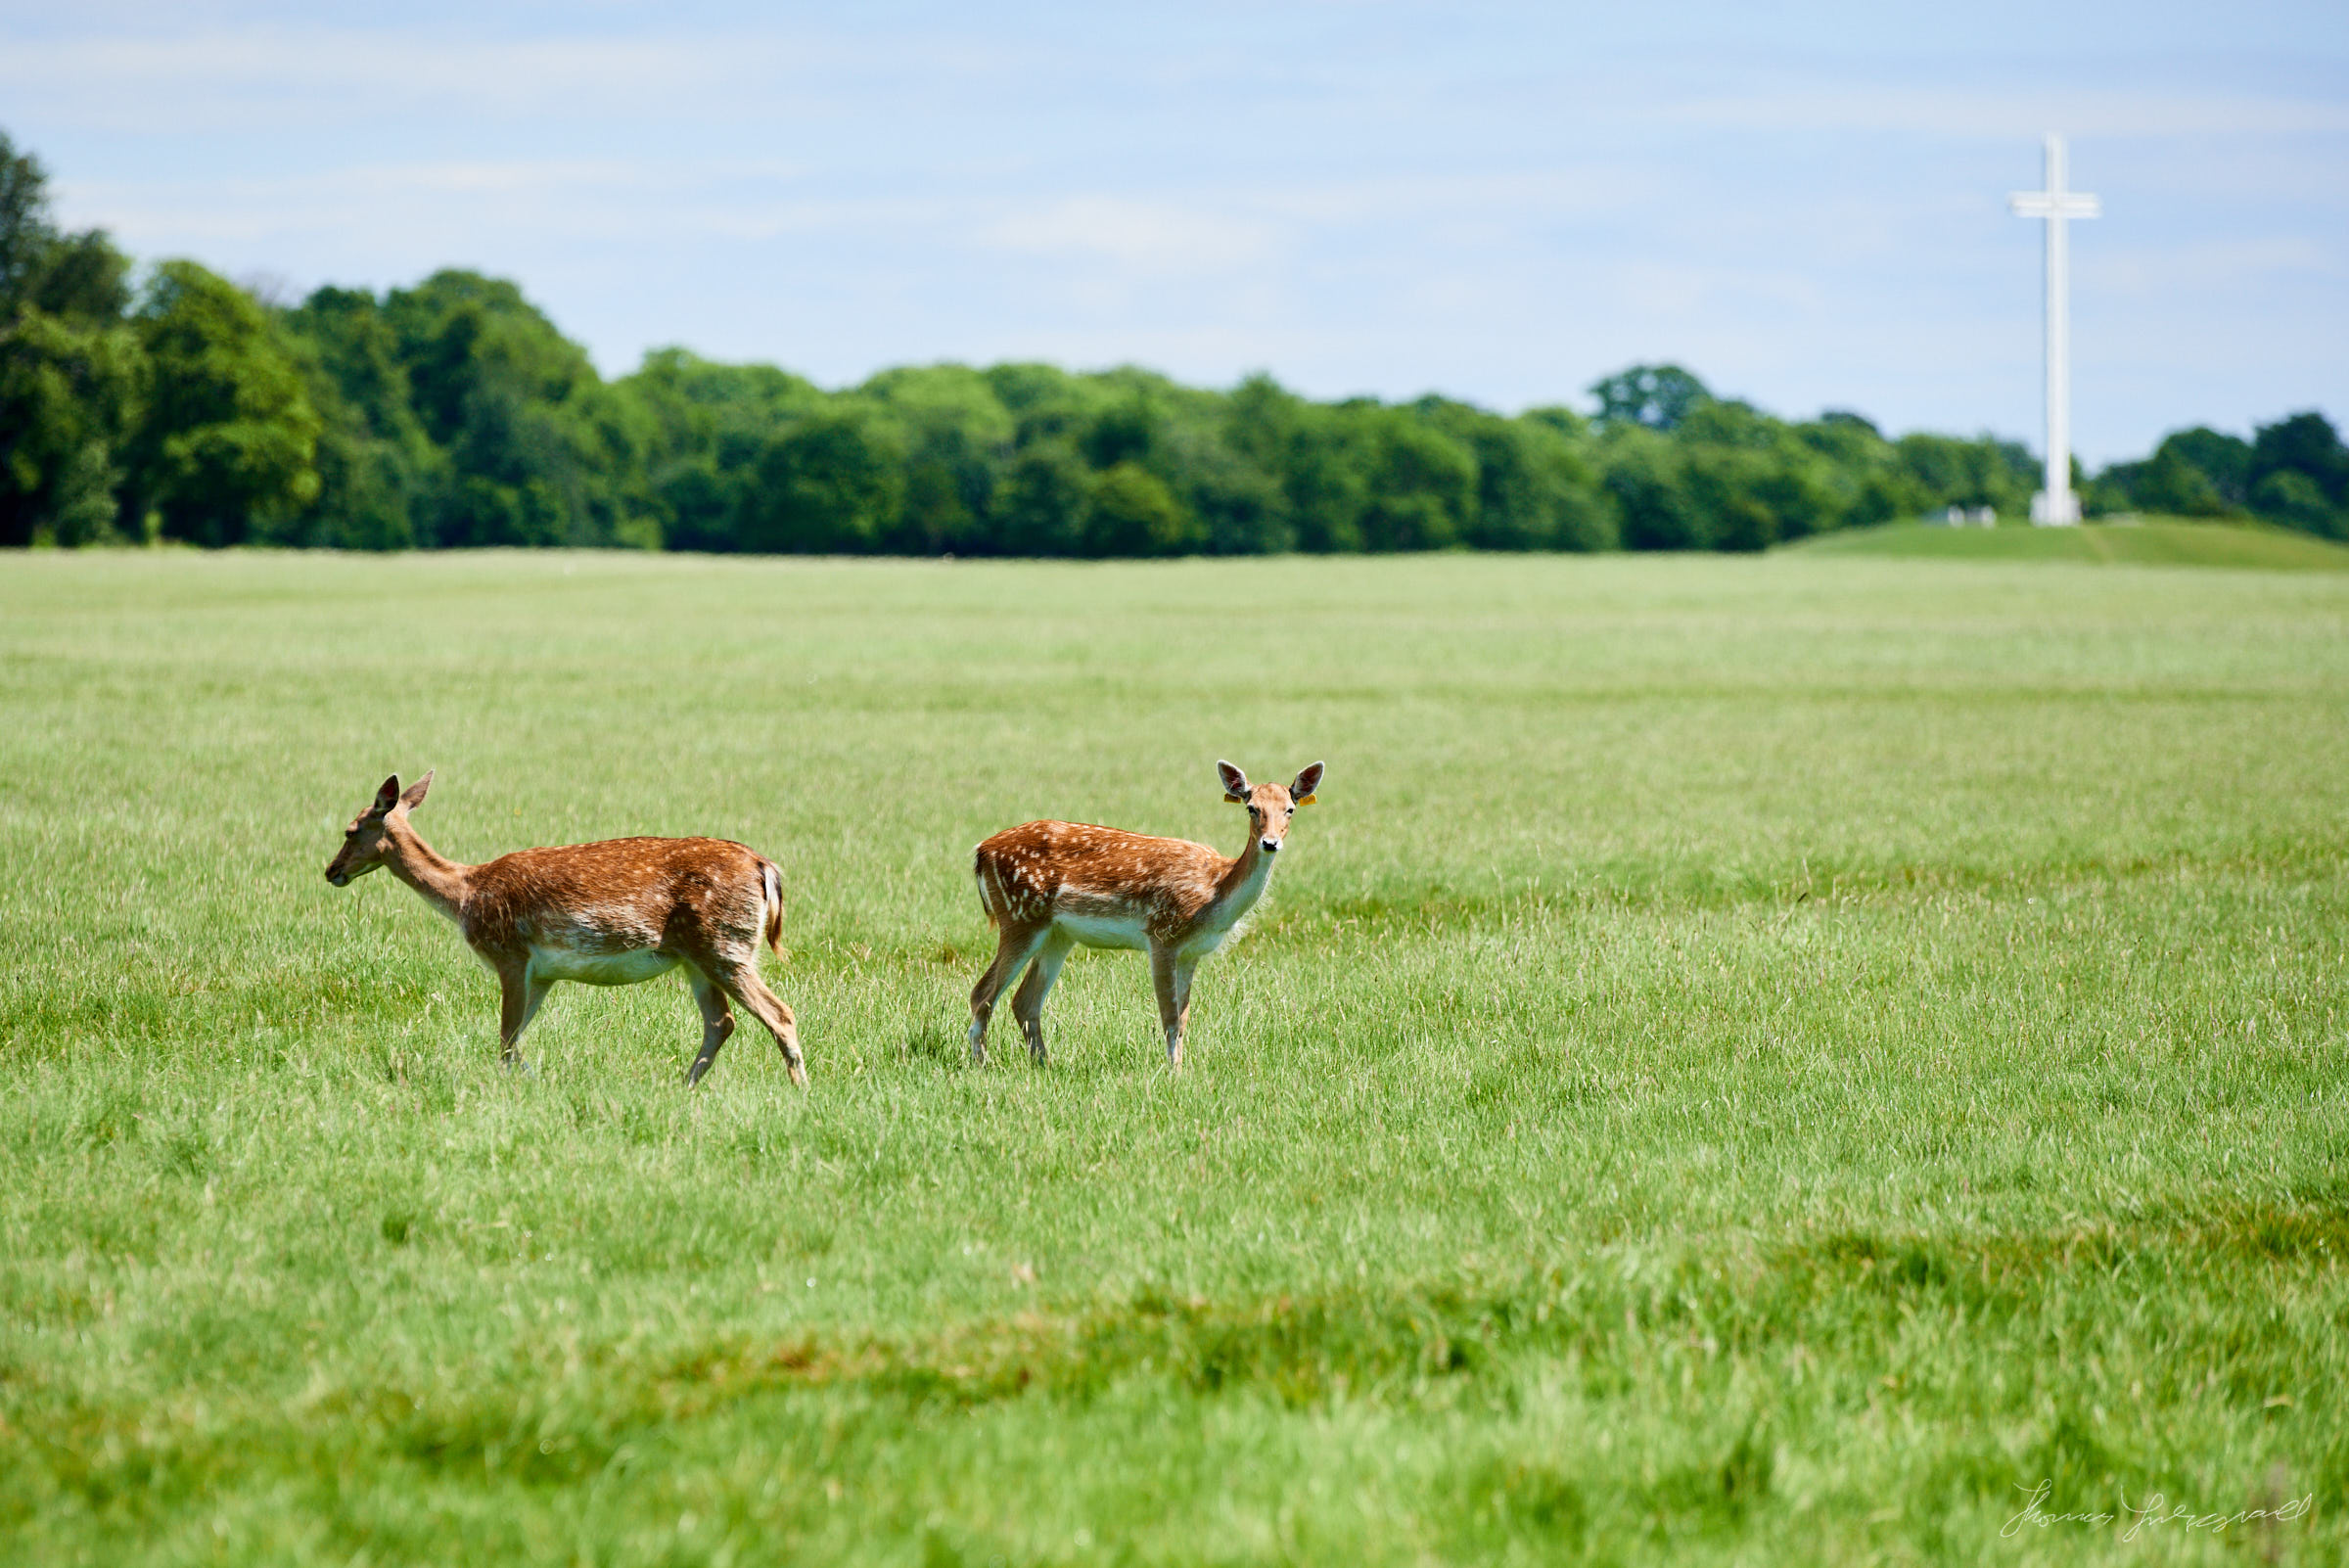 Two Deer in Pheonix Park in the centre of Dublin, with the cross from the visit of the  pope in the background